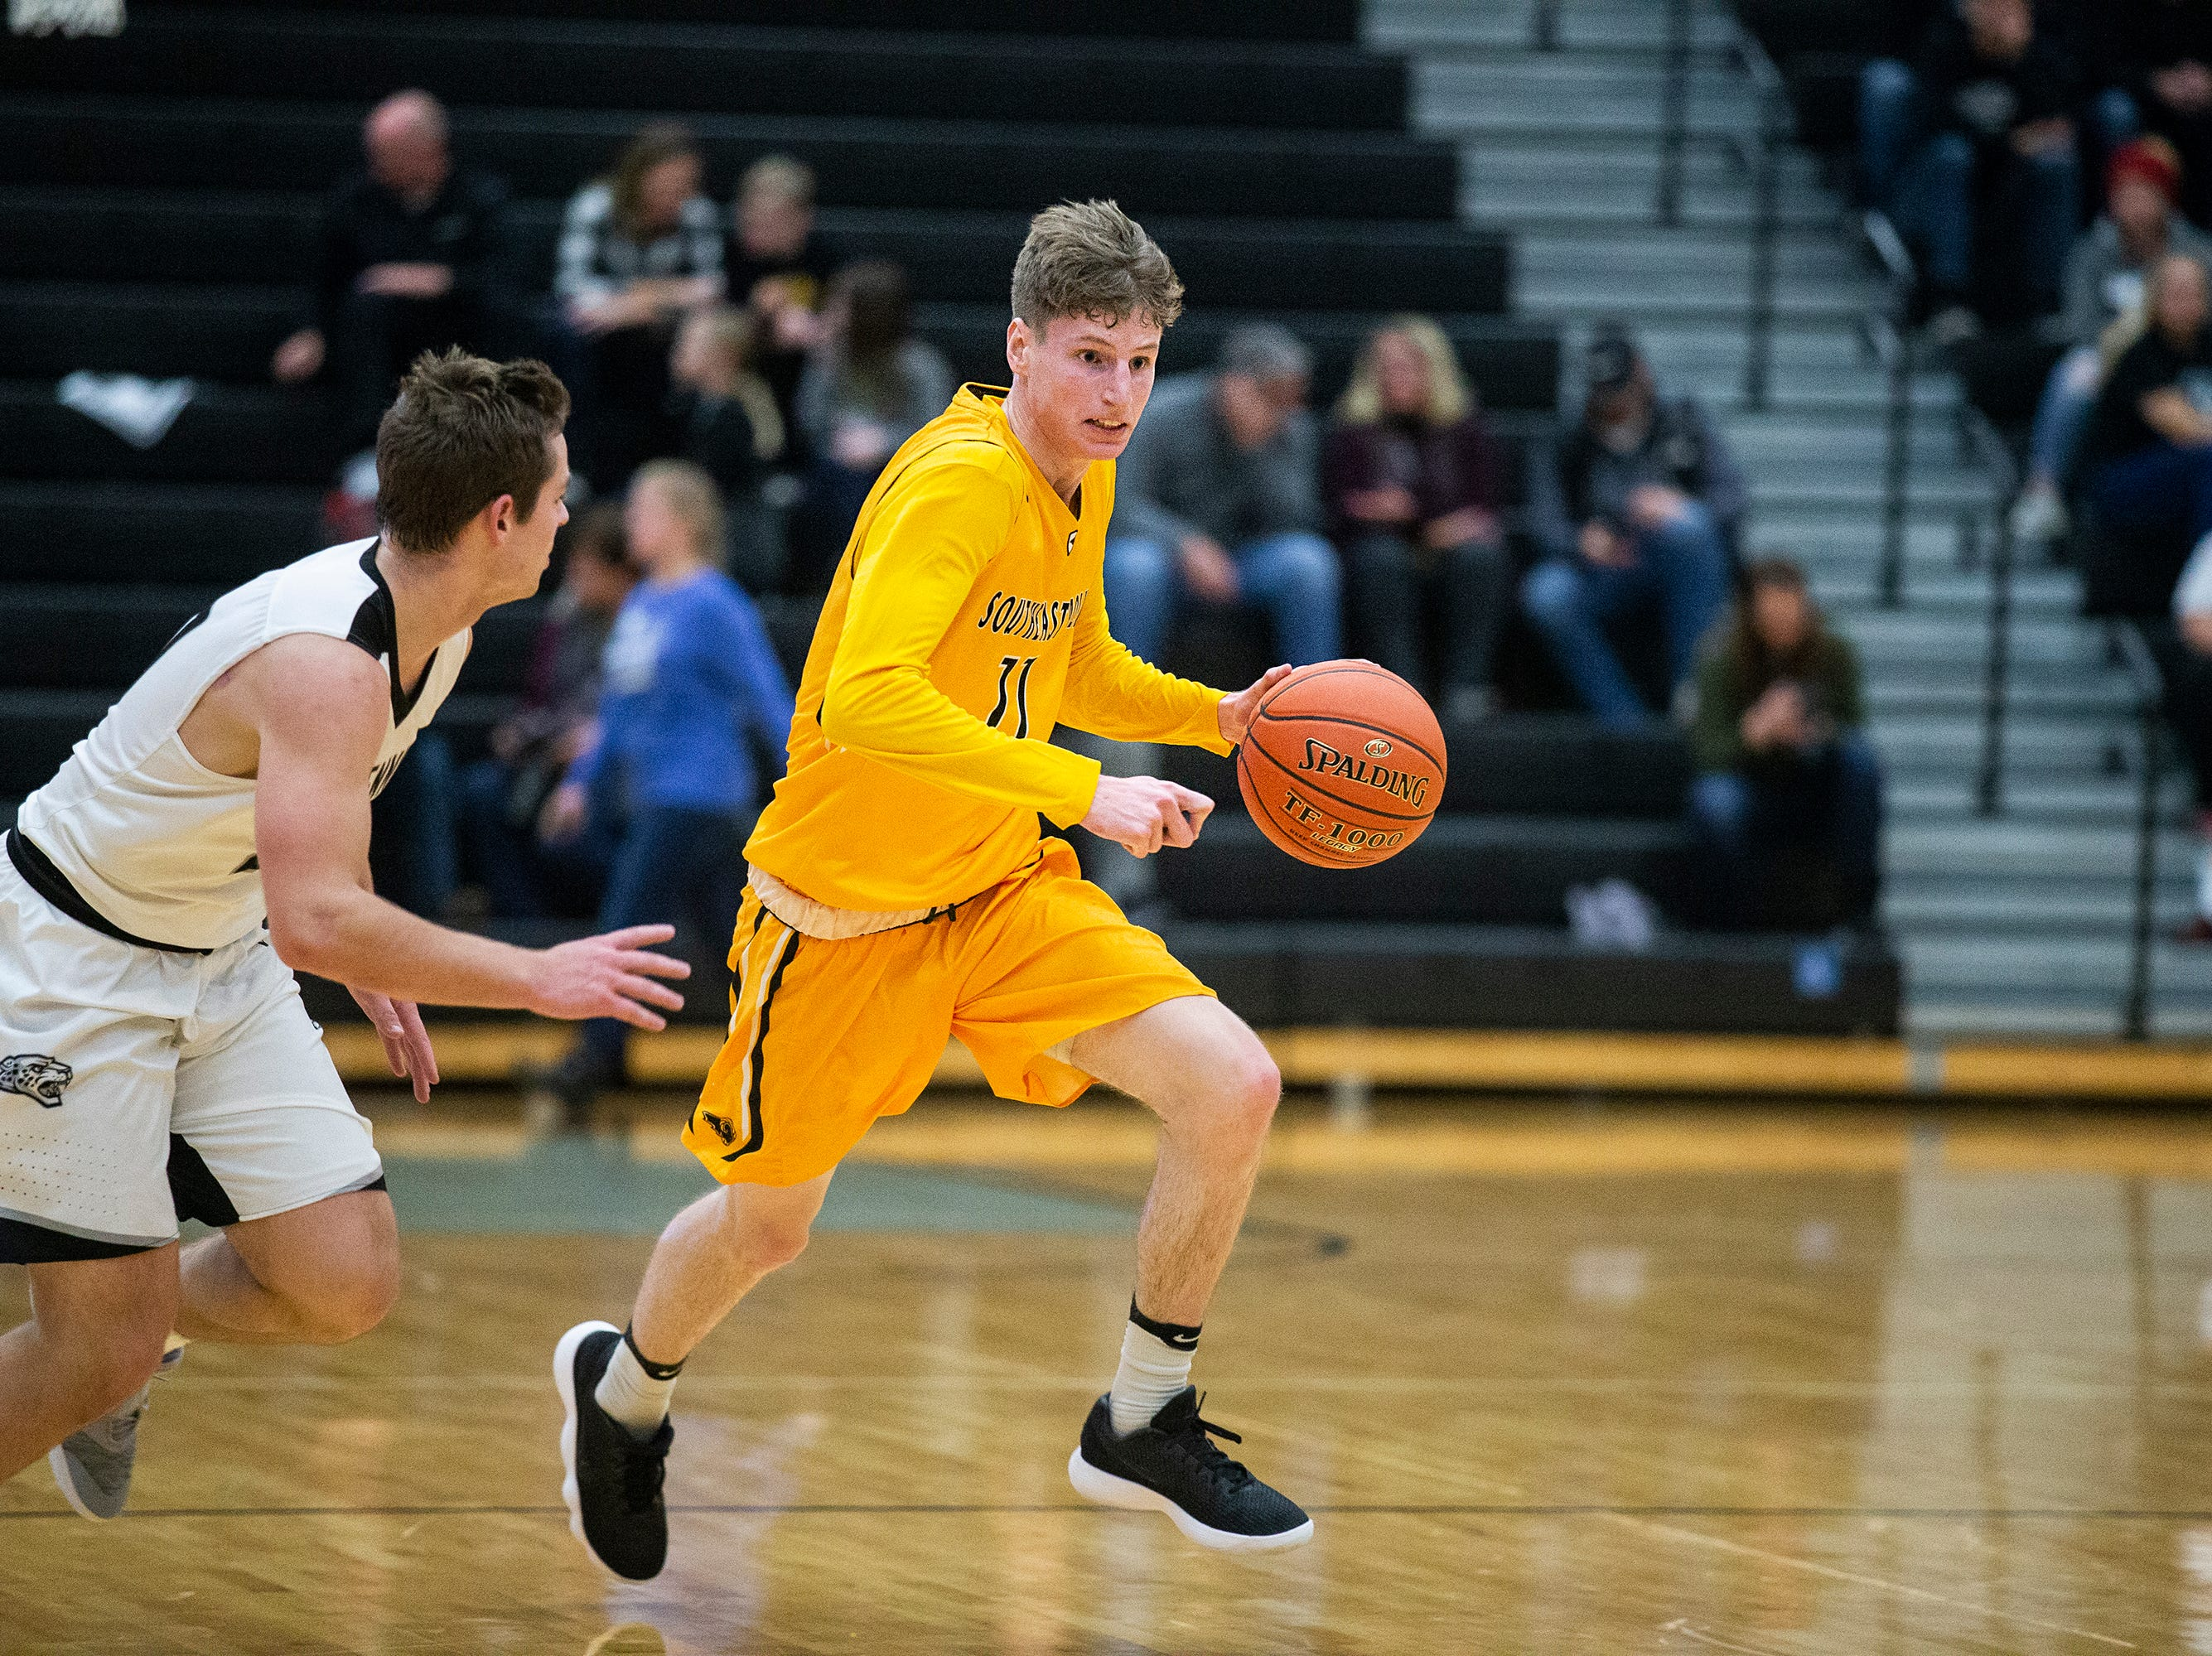 SEP's Sam Glenn brings the ball down the court during the Southeast Polk vs. Ankeny Centennial boy's basketball game on Tuesday, Nov. 27, 2018, at Ankeny Centennial High School.